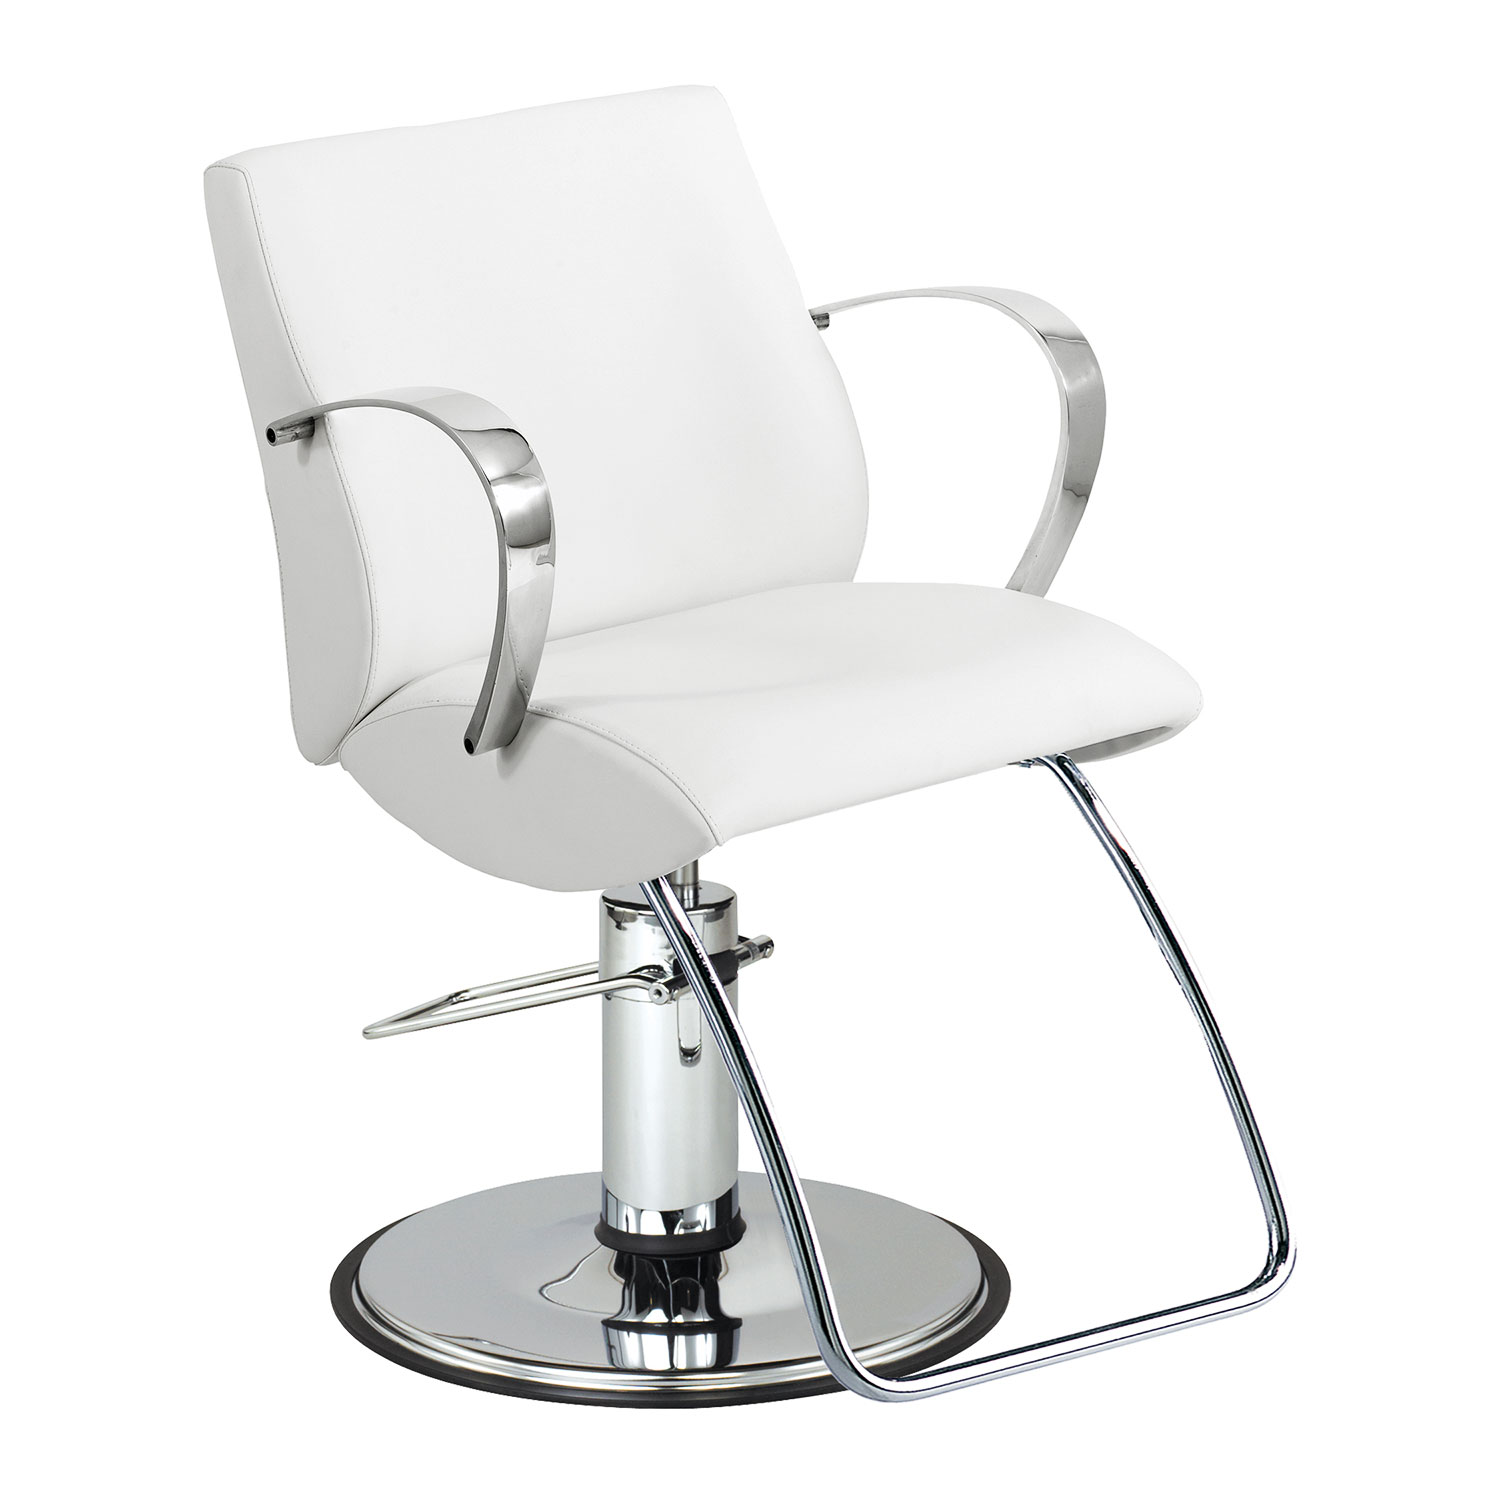 Takara Belmont Lioness Salon Styling Chair image size reference